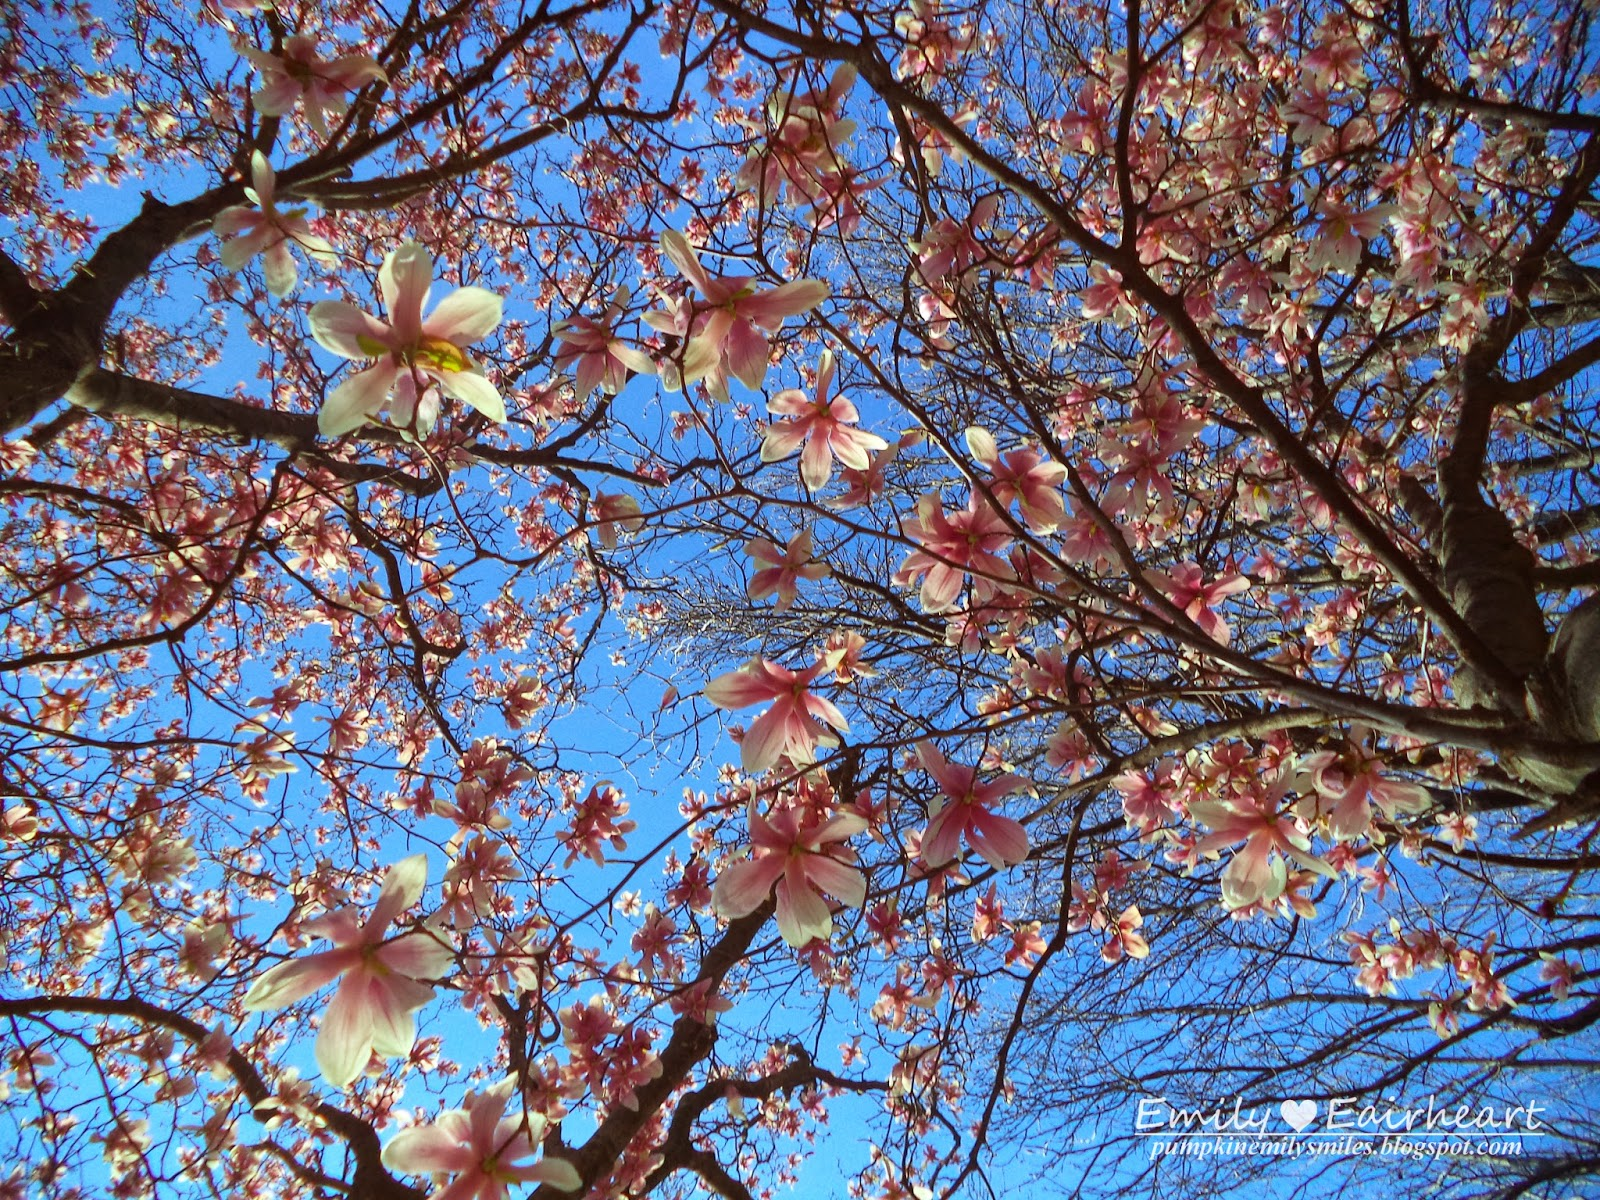 Perspective shot of a tree with pink flowers.